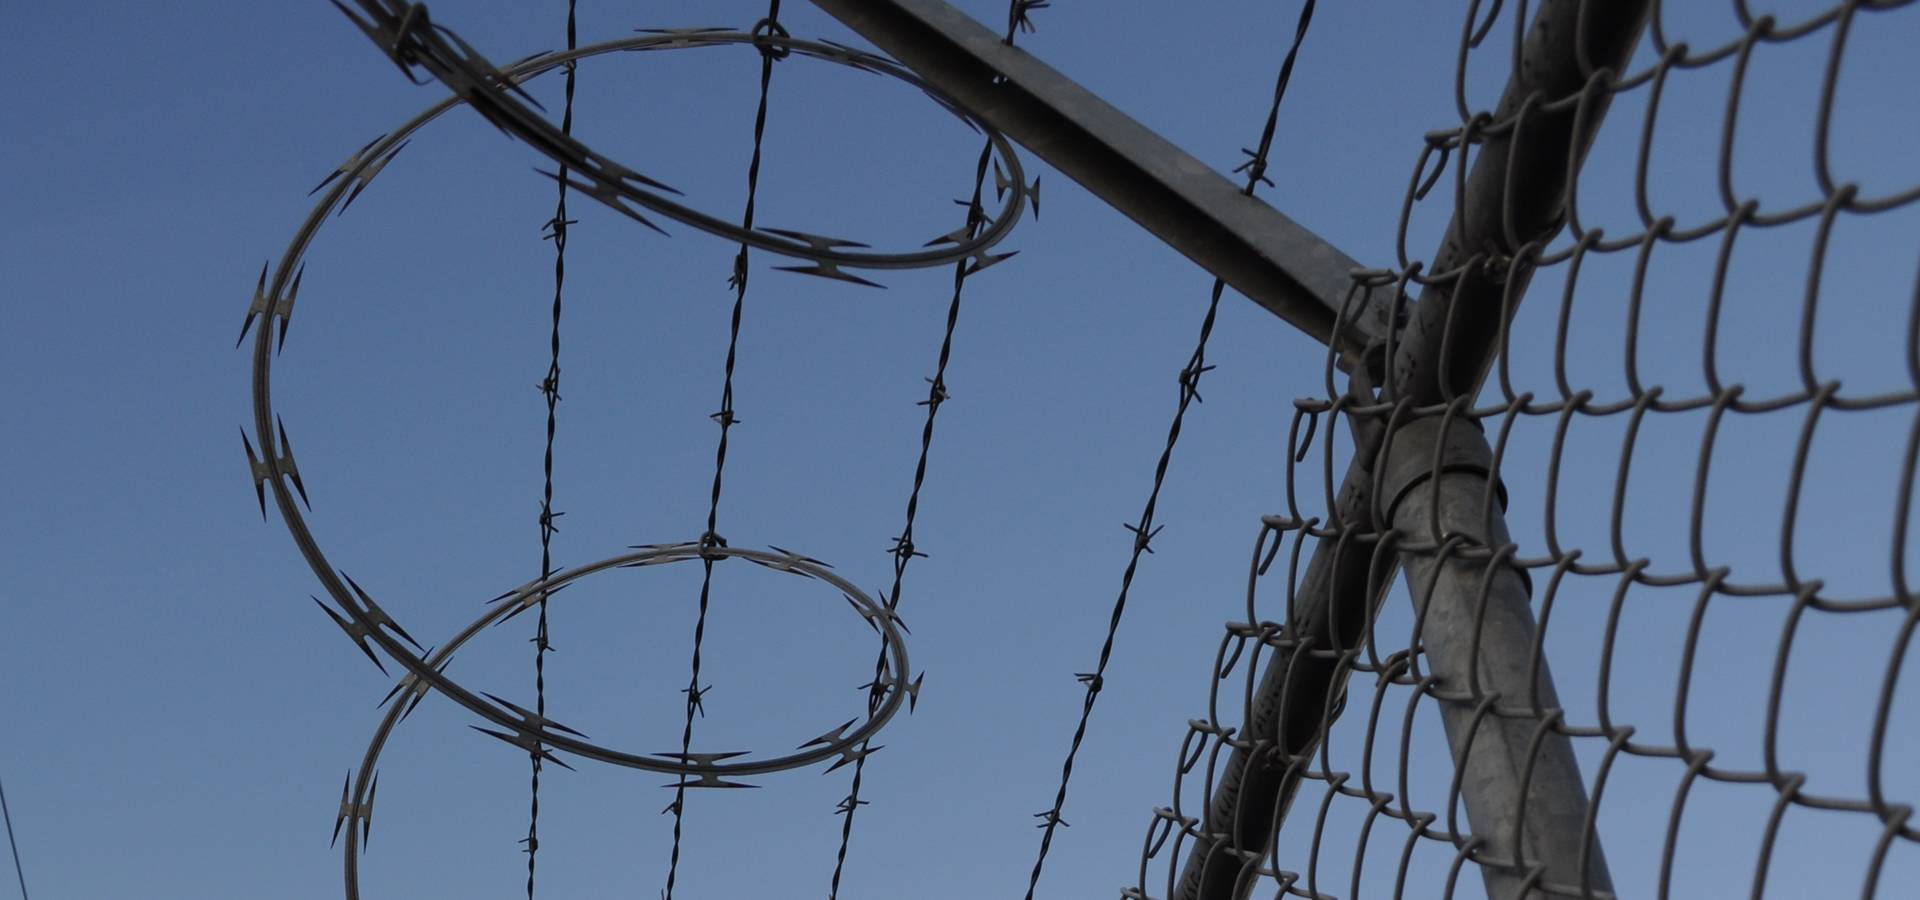 Where To Buy Wire Razor Concertina Wire Supplied To Enhance Security